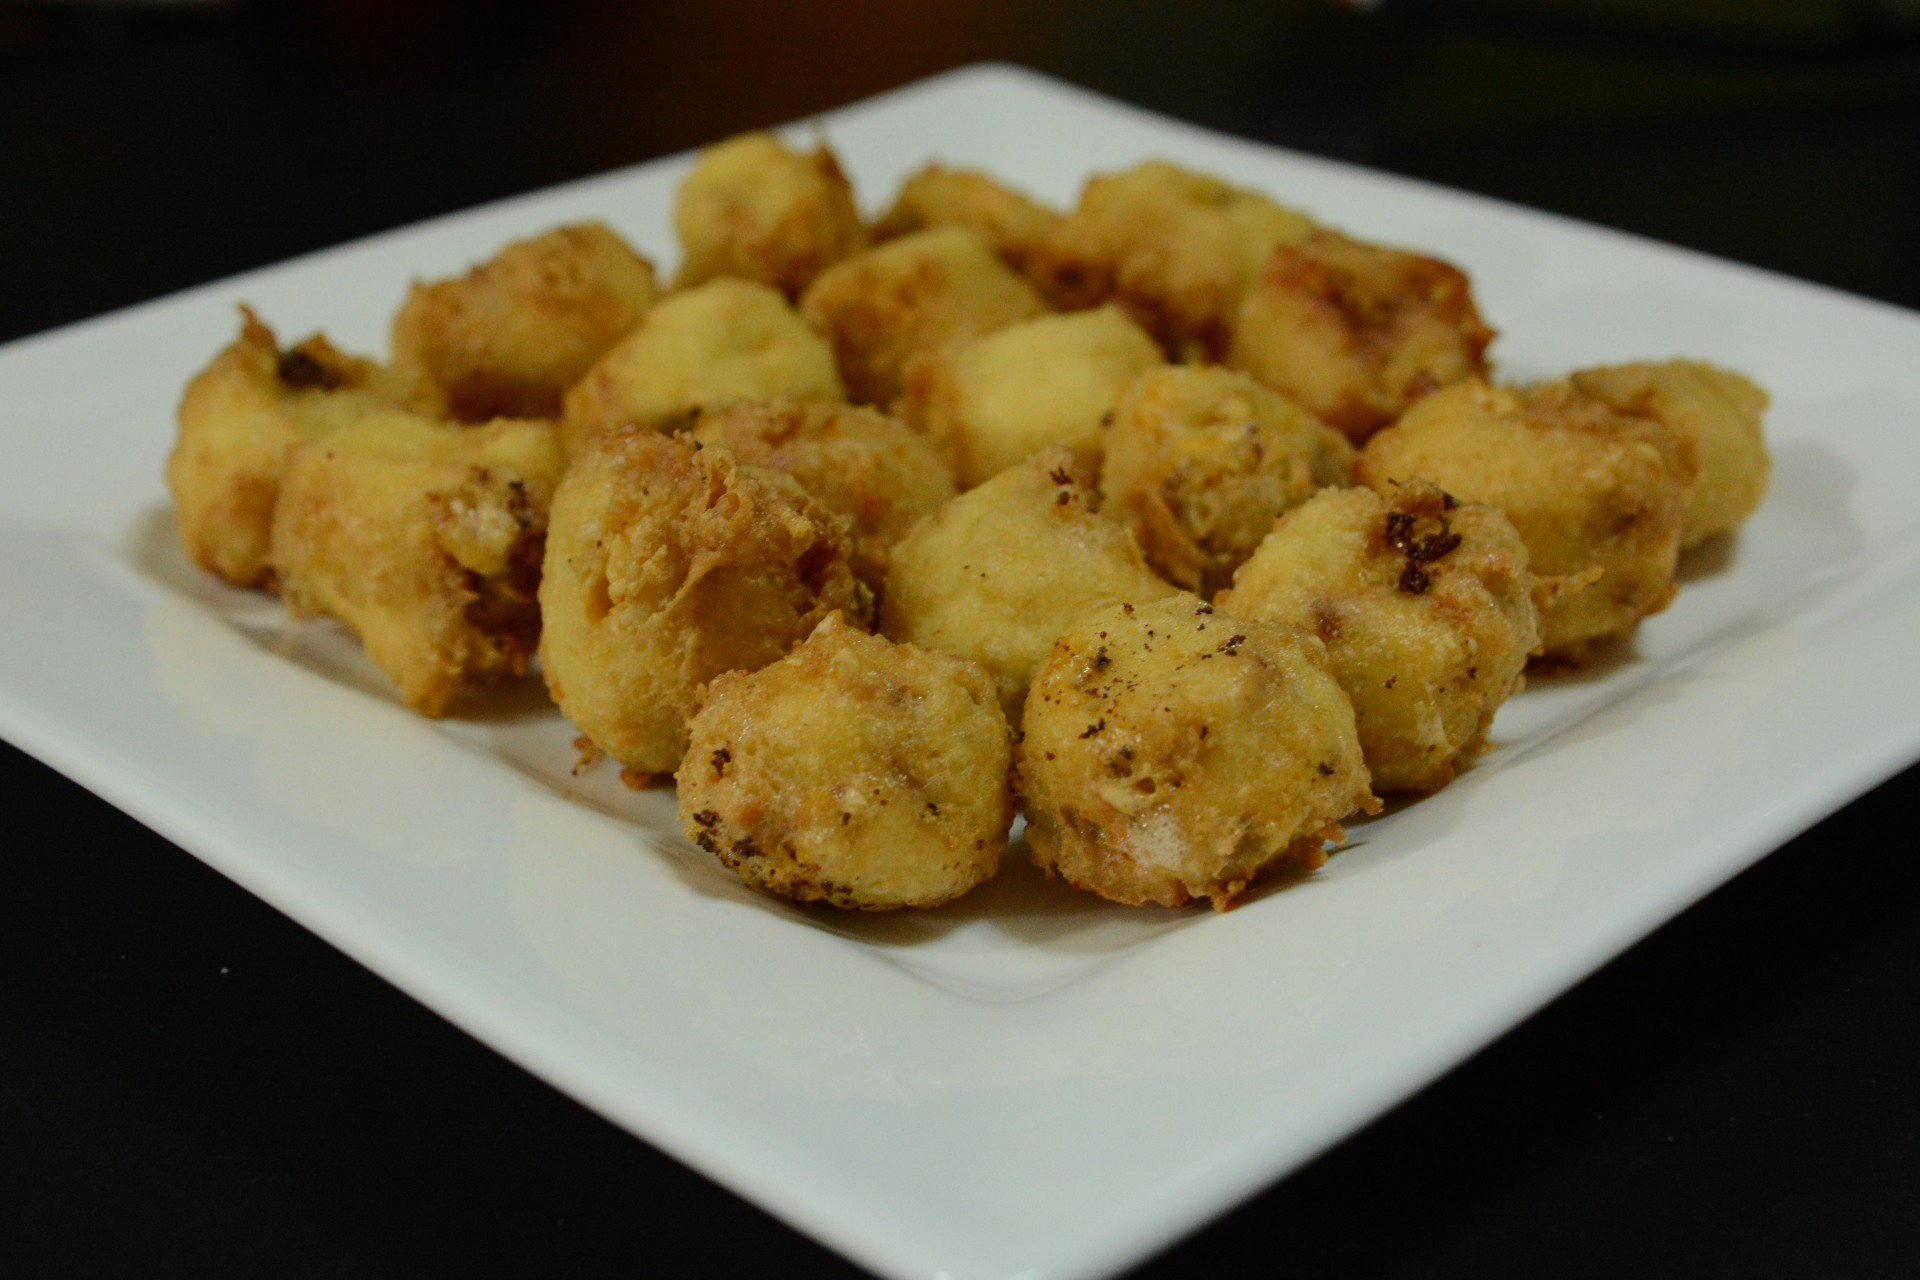 Fry-day: Deep Fried Jalapeno Poppers